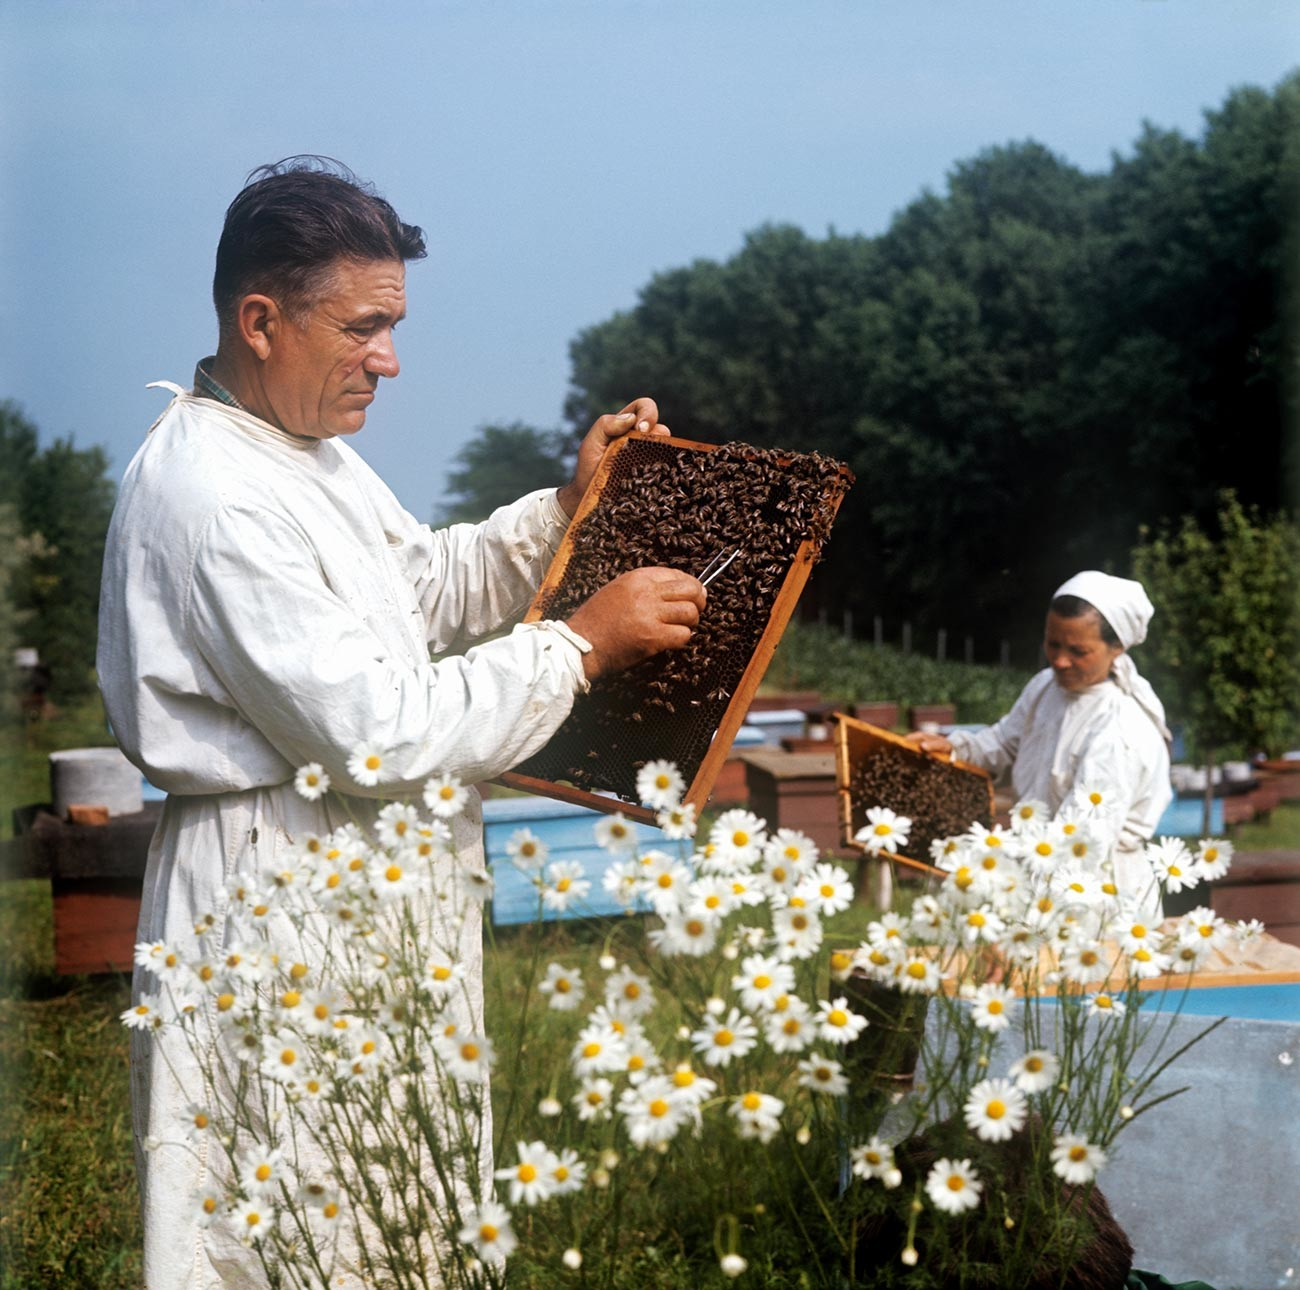 Beekeeper Anton Lupulchuk in an apiary at the Mayak collective farm in the Dondyushansky district. Moldavian SSR, 1975